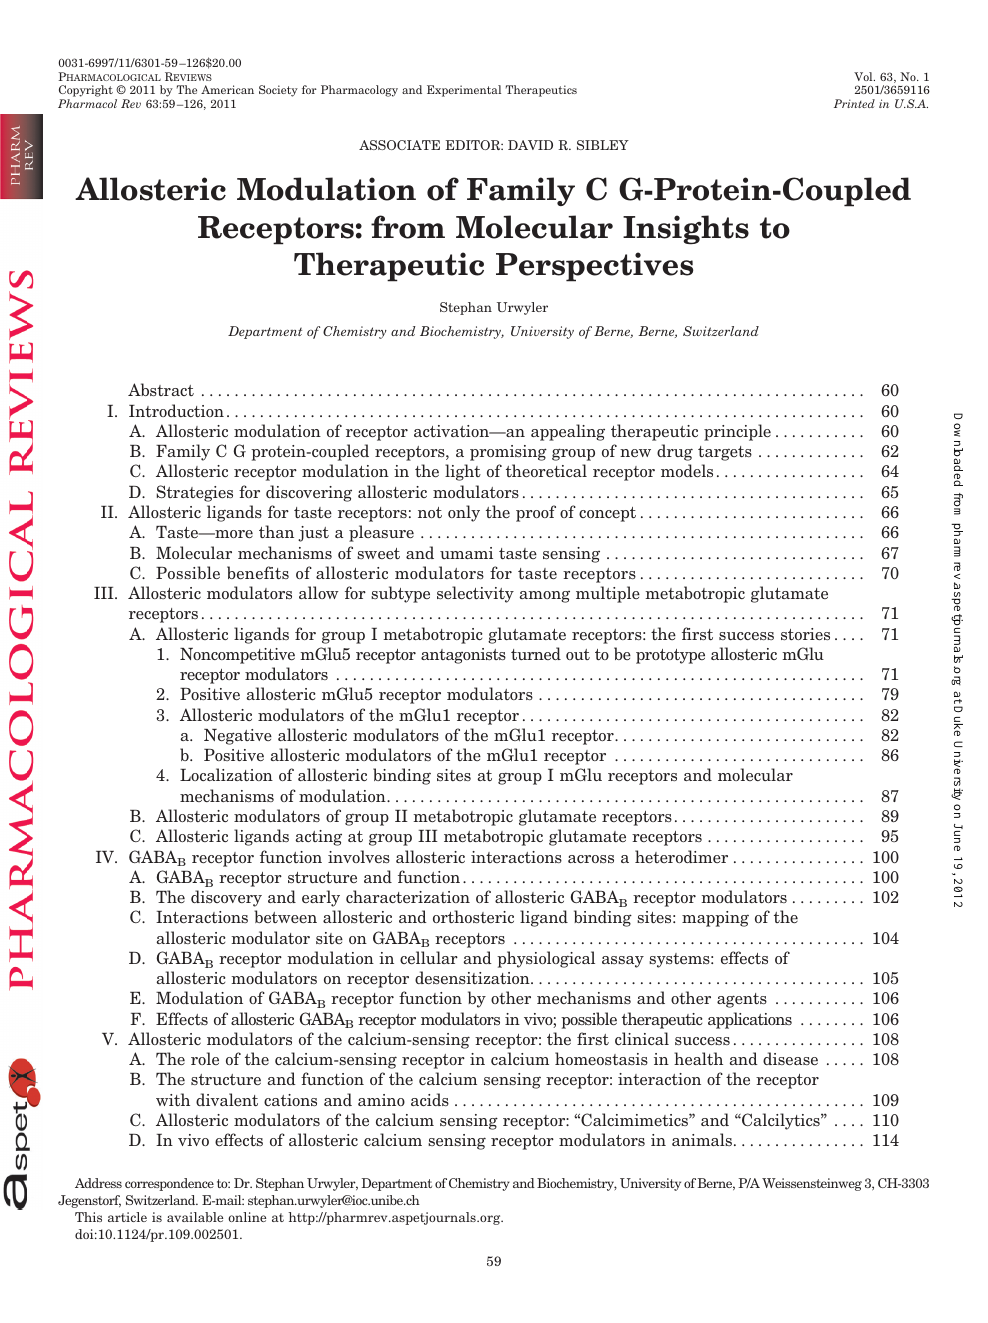 Allosteric Modulation of Family C G-Protein-Coupled Receptors: from